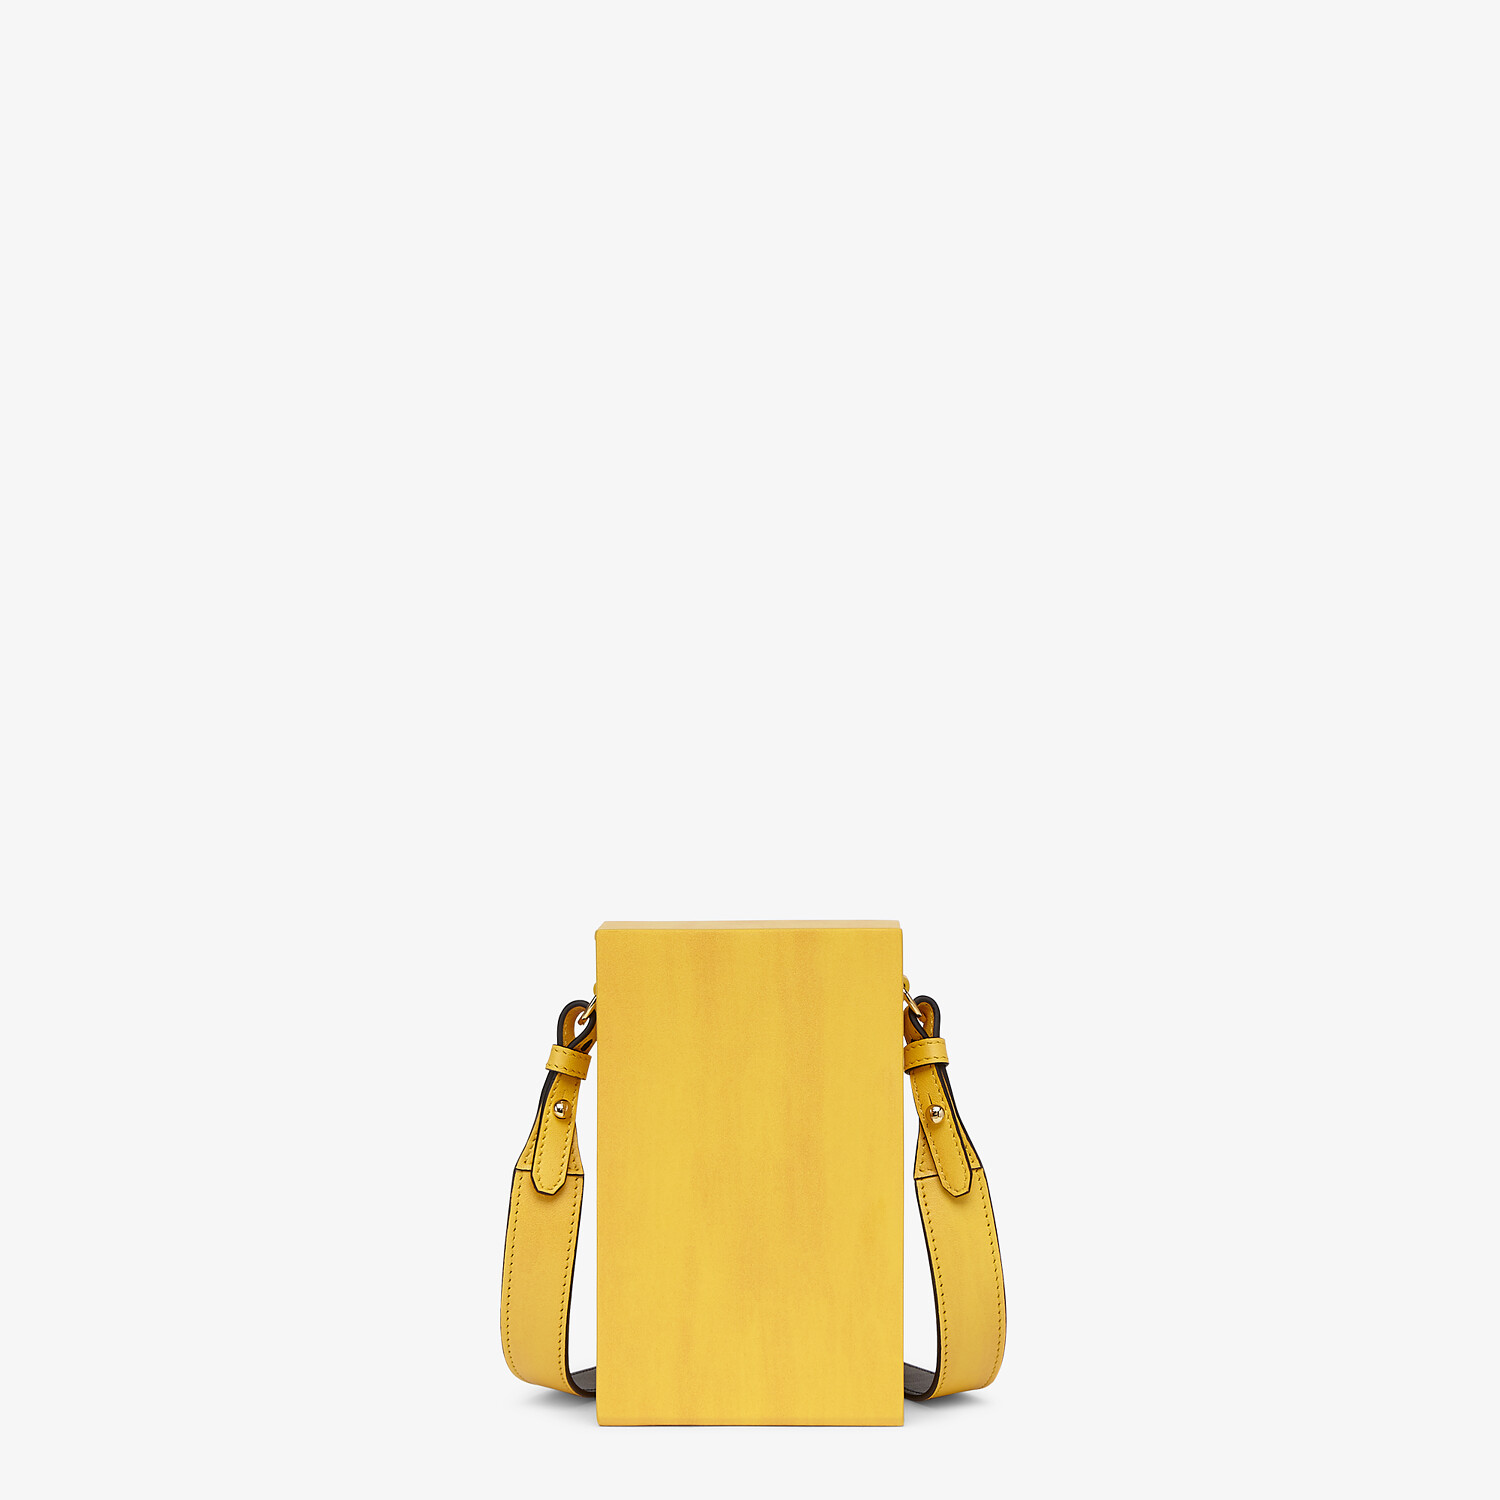 FENDI VERTICAL BOX - Yellow leather bag - view 3 detail